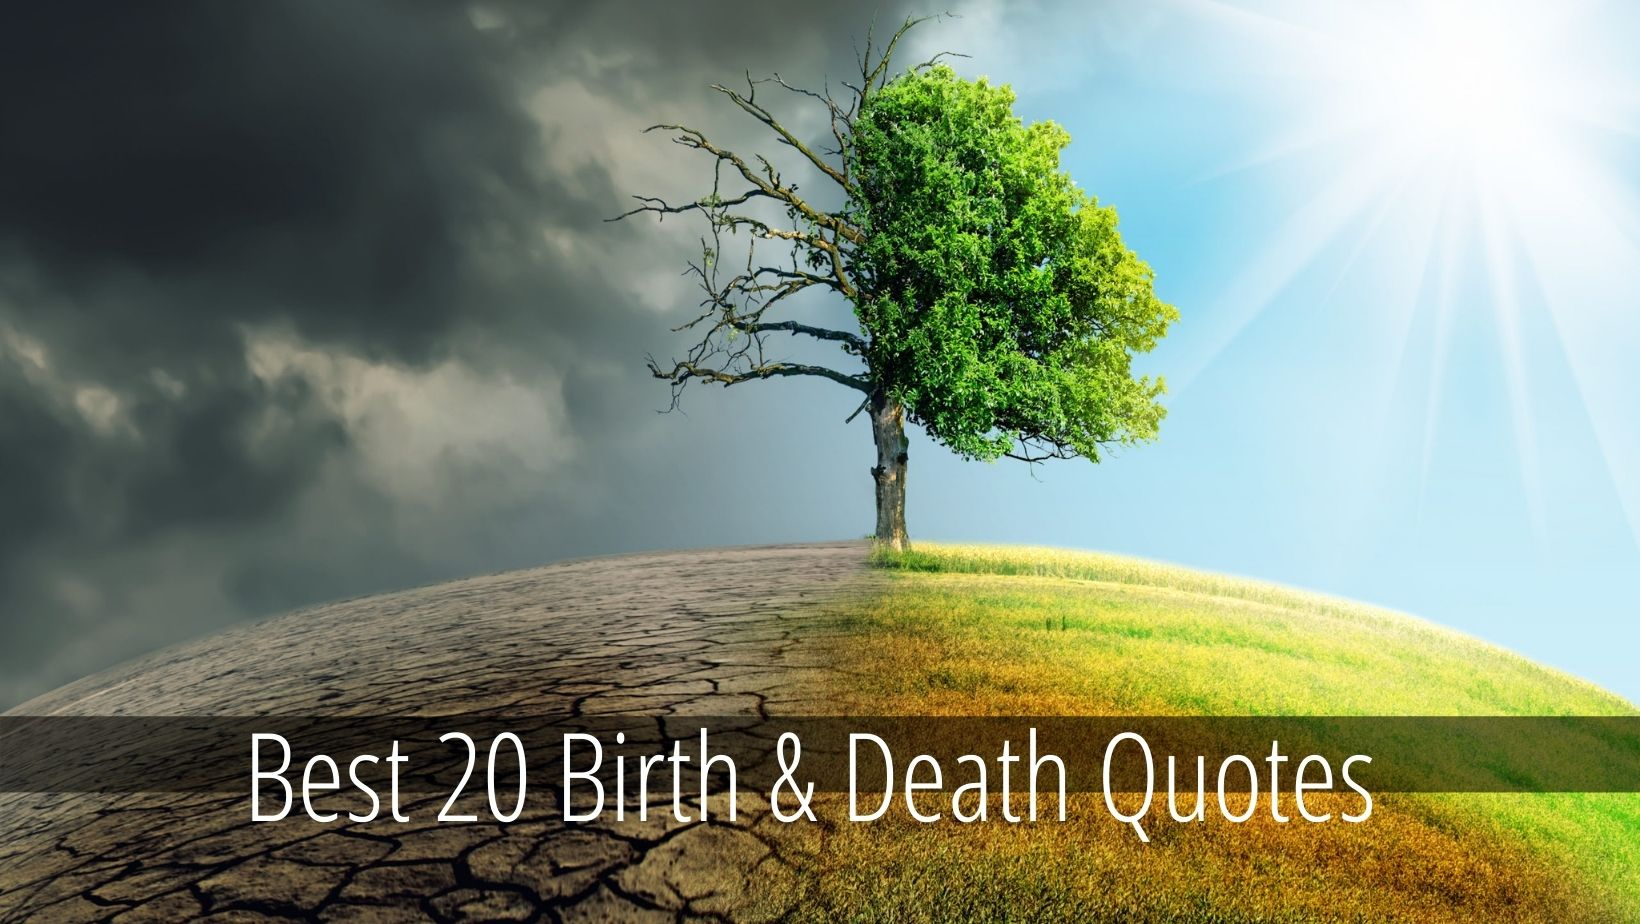 Birth and Death Quotes